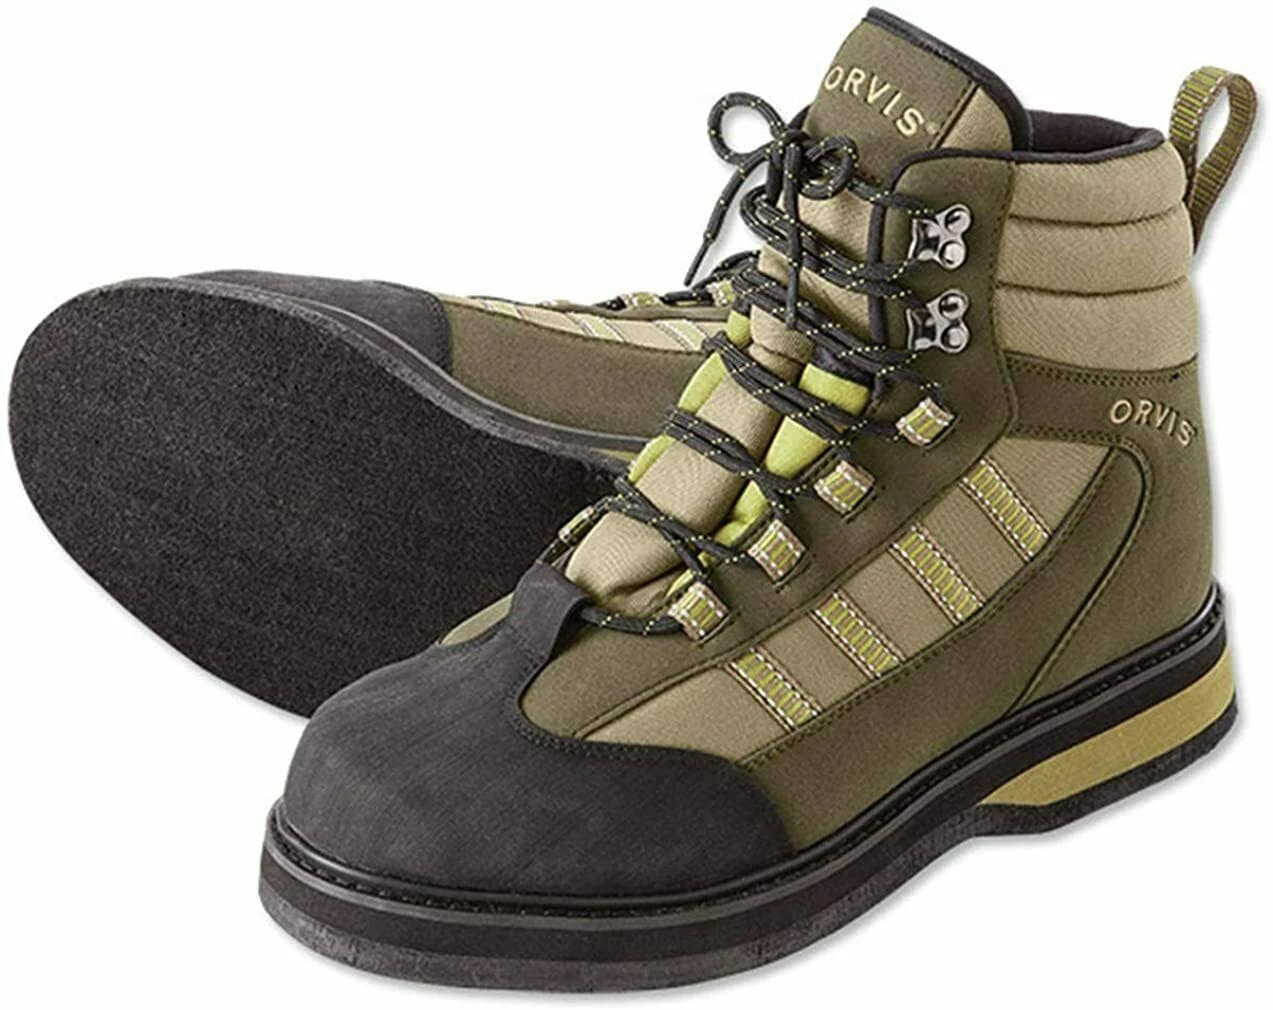 Orvis Encounter Felt Sole Wading Boots for Men - Tan/Olive - 10M